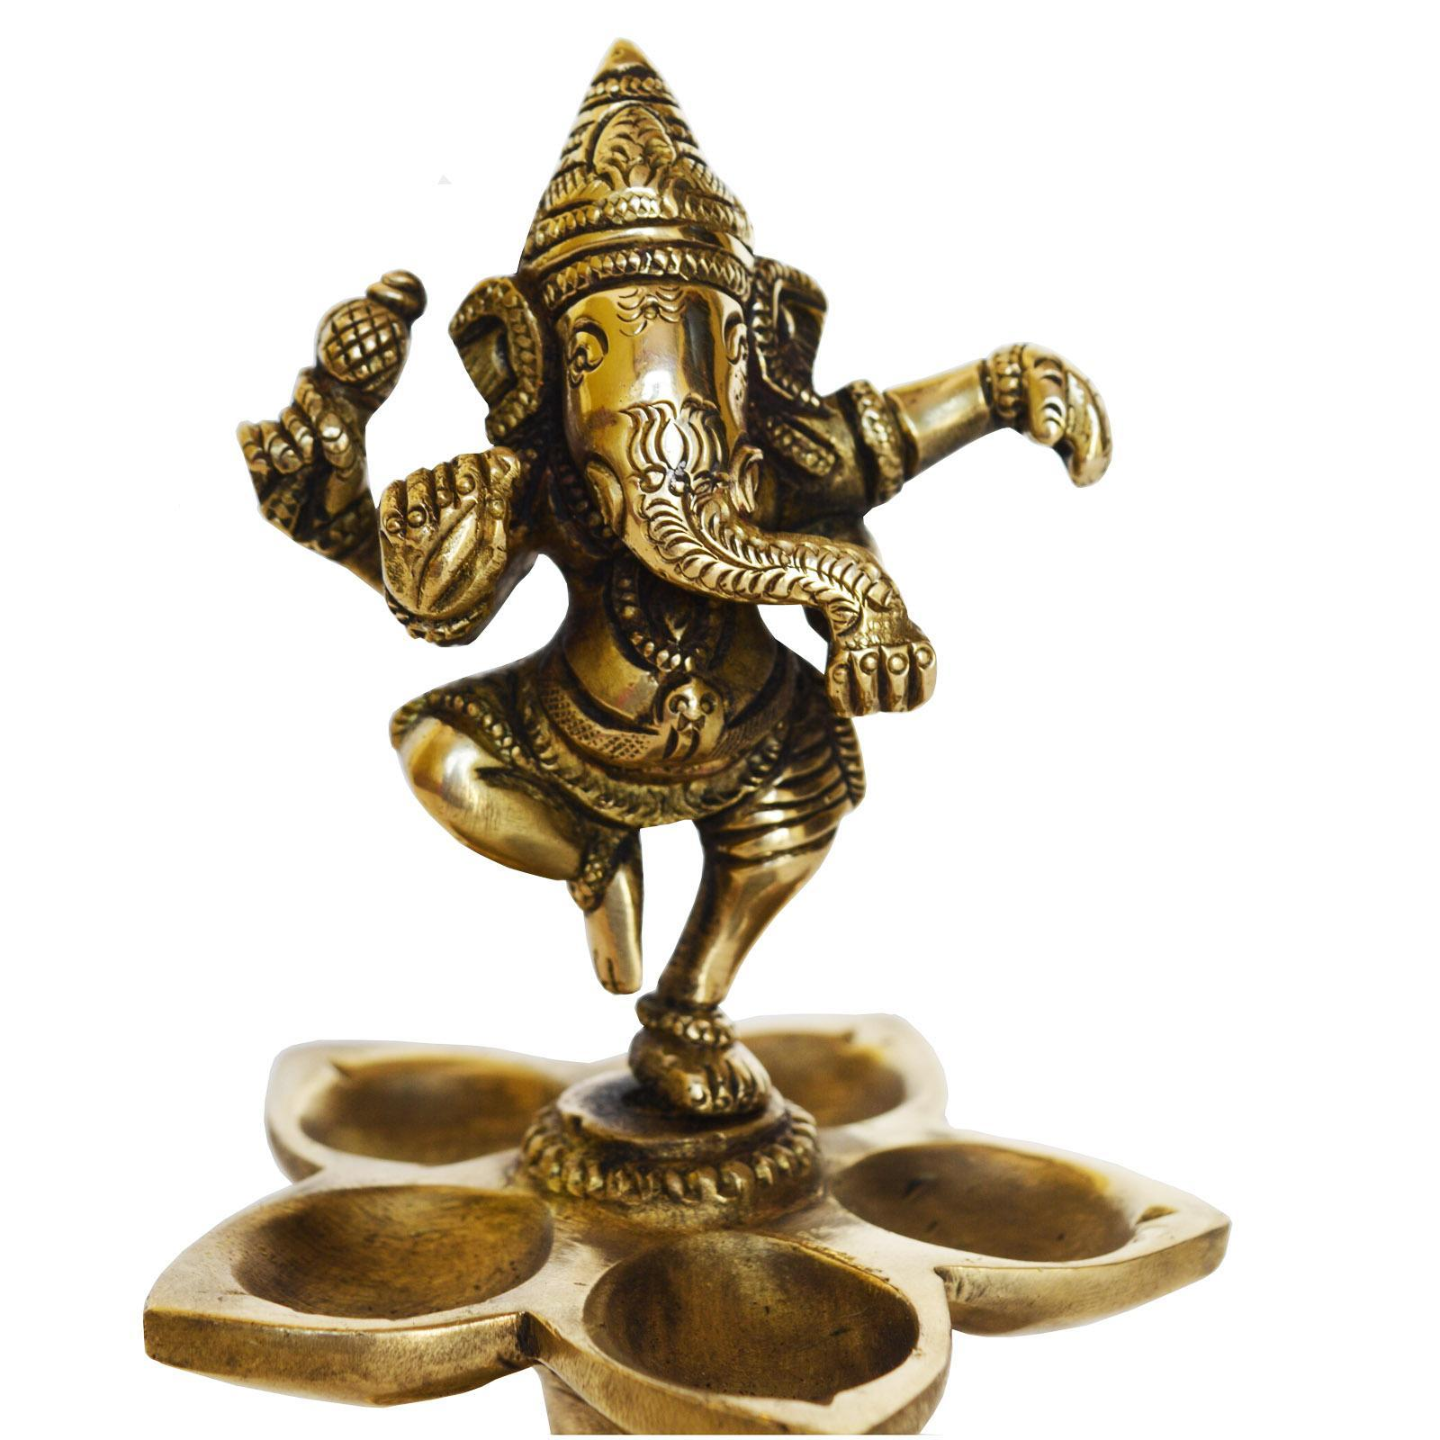 Dancing Ganesha Brass Oil Lamp Decorative Metal Lamp Statue for Home Decor - 6 Inch (BS1169 A)